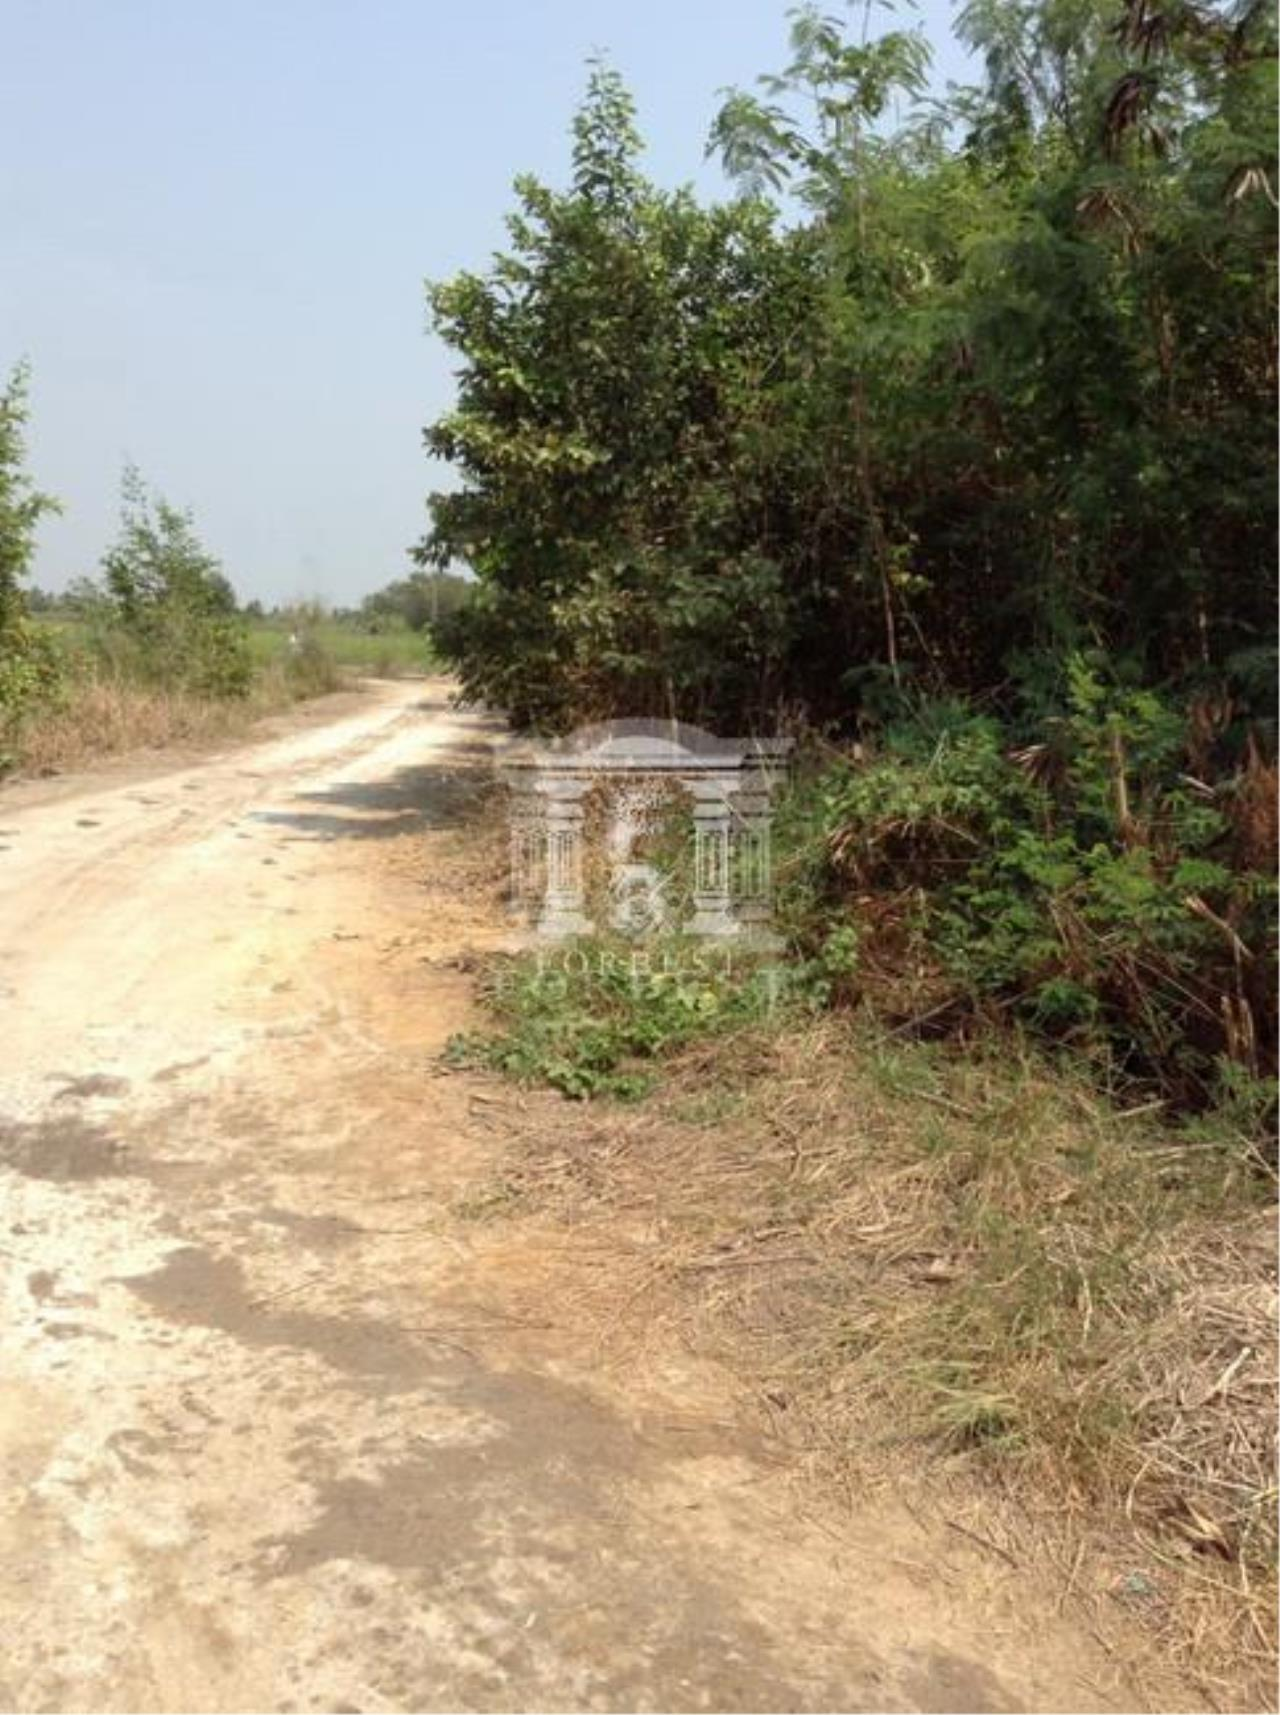 Forbest Properties Agency's 37164-Land For Sale, in Ban Pho district, Chachoengsao province, 4 rai 340 sq.wa. 6